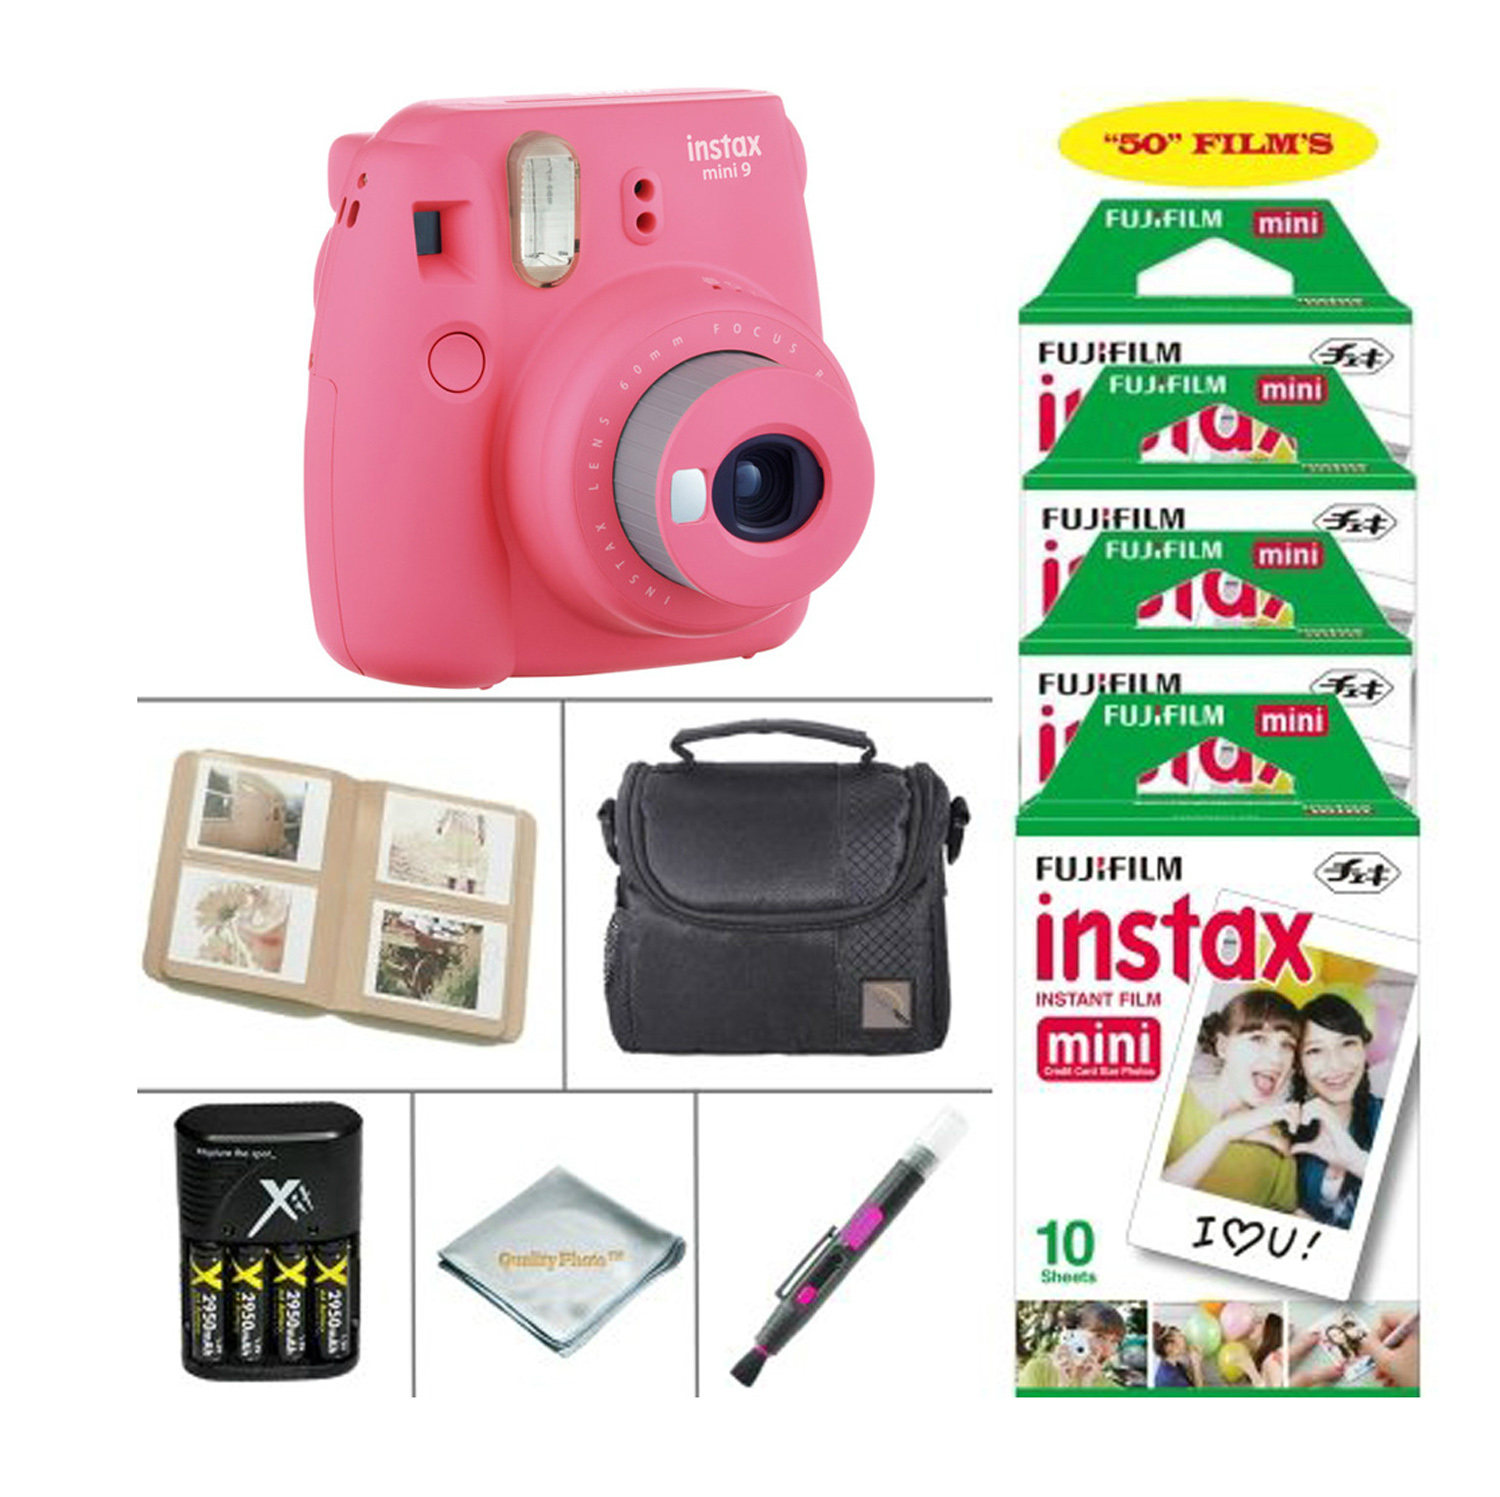 Fujifilm Instax Mini 9 Ice Blue Camera + Accessory kit for Fujifilm Instant Camera, includes Fuji Instax Film 50 Sheets + 4 Battery & Charger + Photo Album + Instax Case + MORE